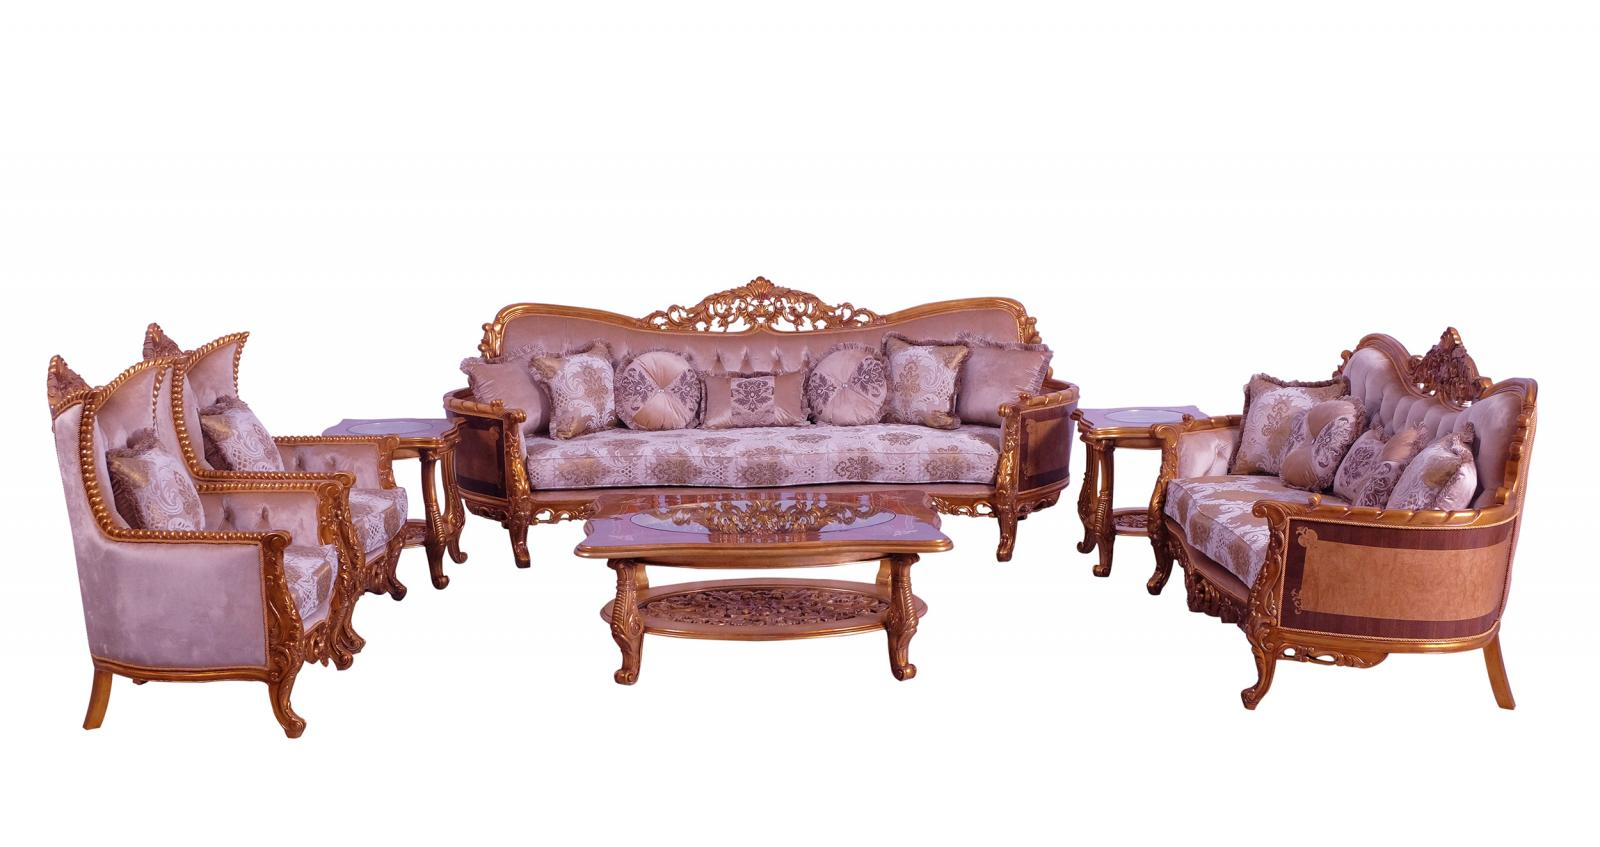 Classic  Traditional Gold  Sand Wood  Solid Hardwood and Fabric Sofa Set EUROPEAN FURNITURE 31056-S-Set-4